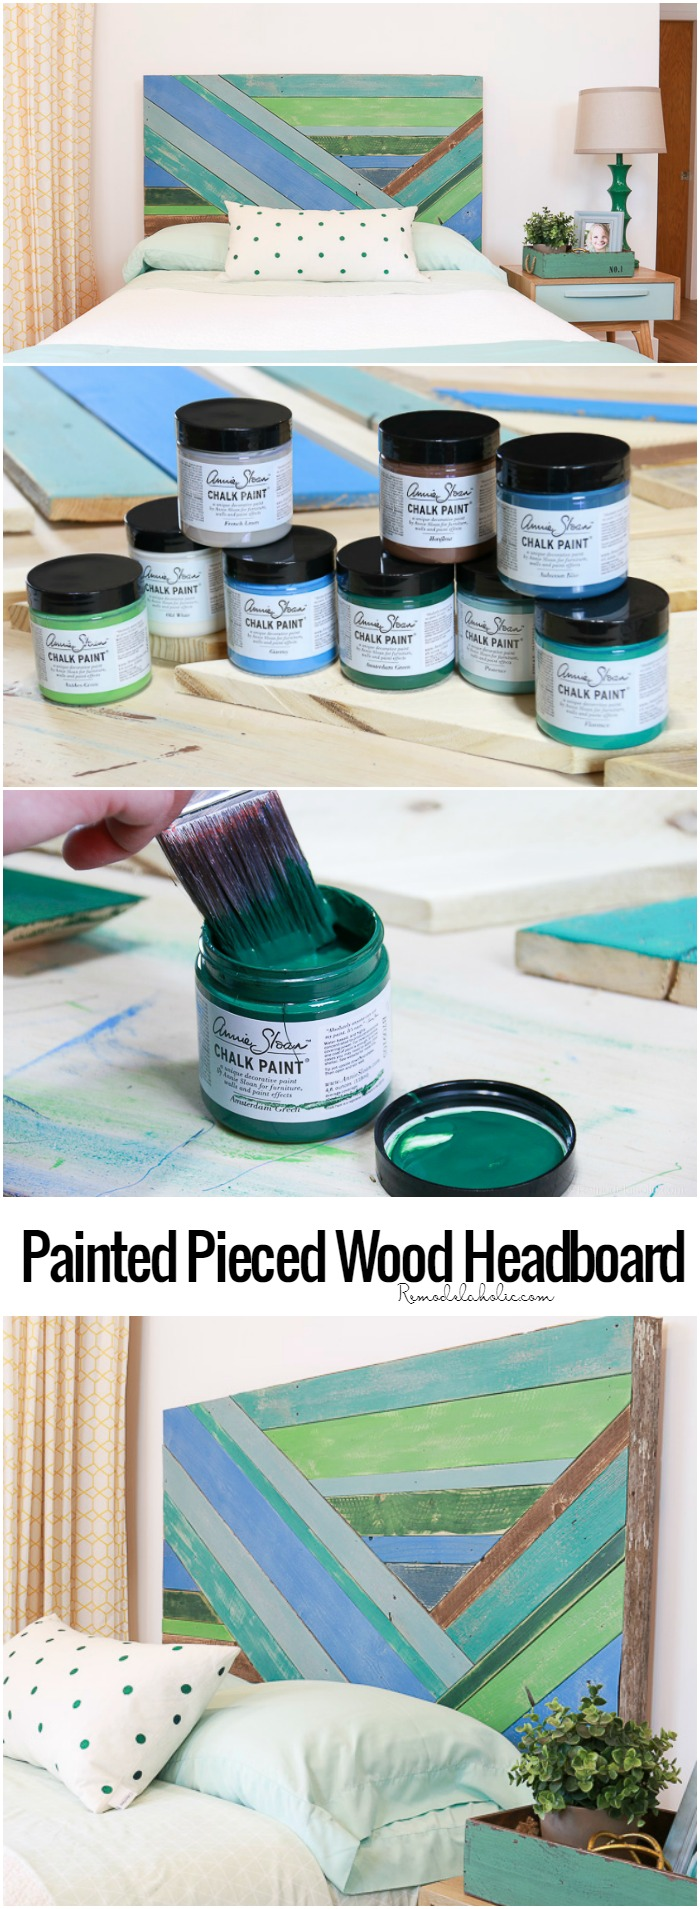 Let your scrap pile of reclaimed wood shine! This DIY tutorial shows you step by step how to build a pieced wood headboard, with optional color washing with #AnnieSloan chalk paint for added character. #remodelaholic | DIY headboard tutorial | reclaimed wood project | video tutorial | free building plan